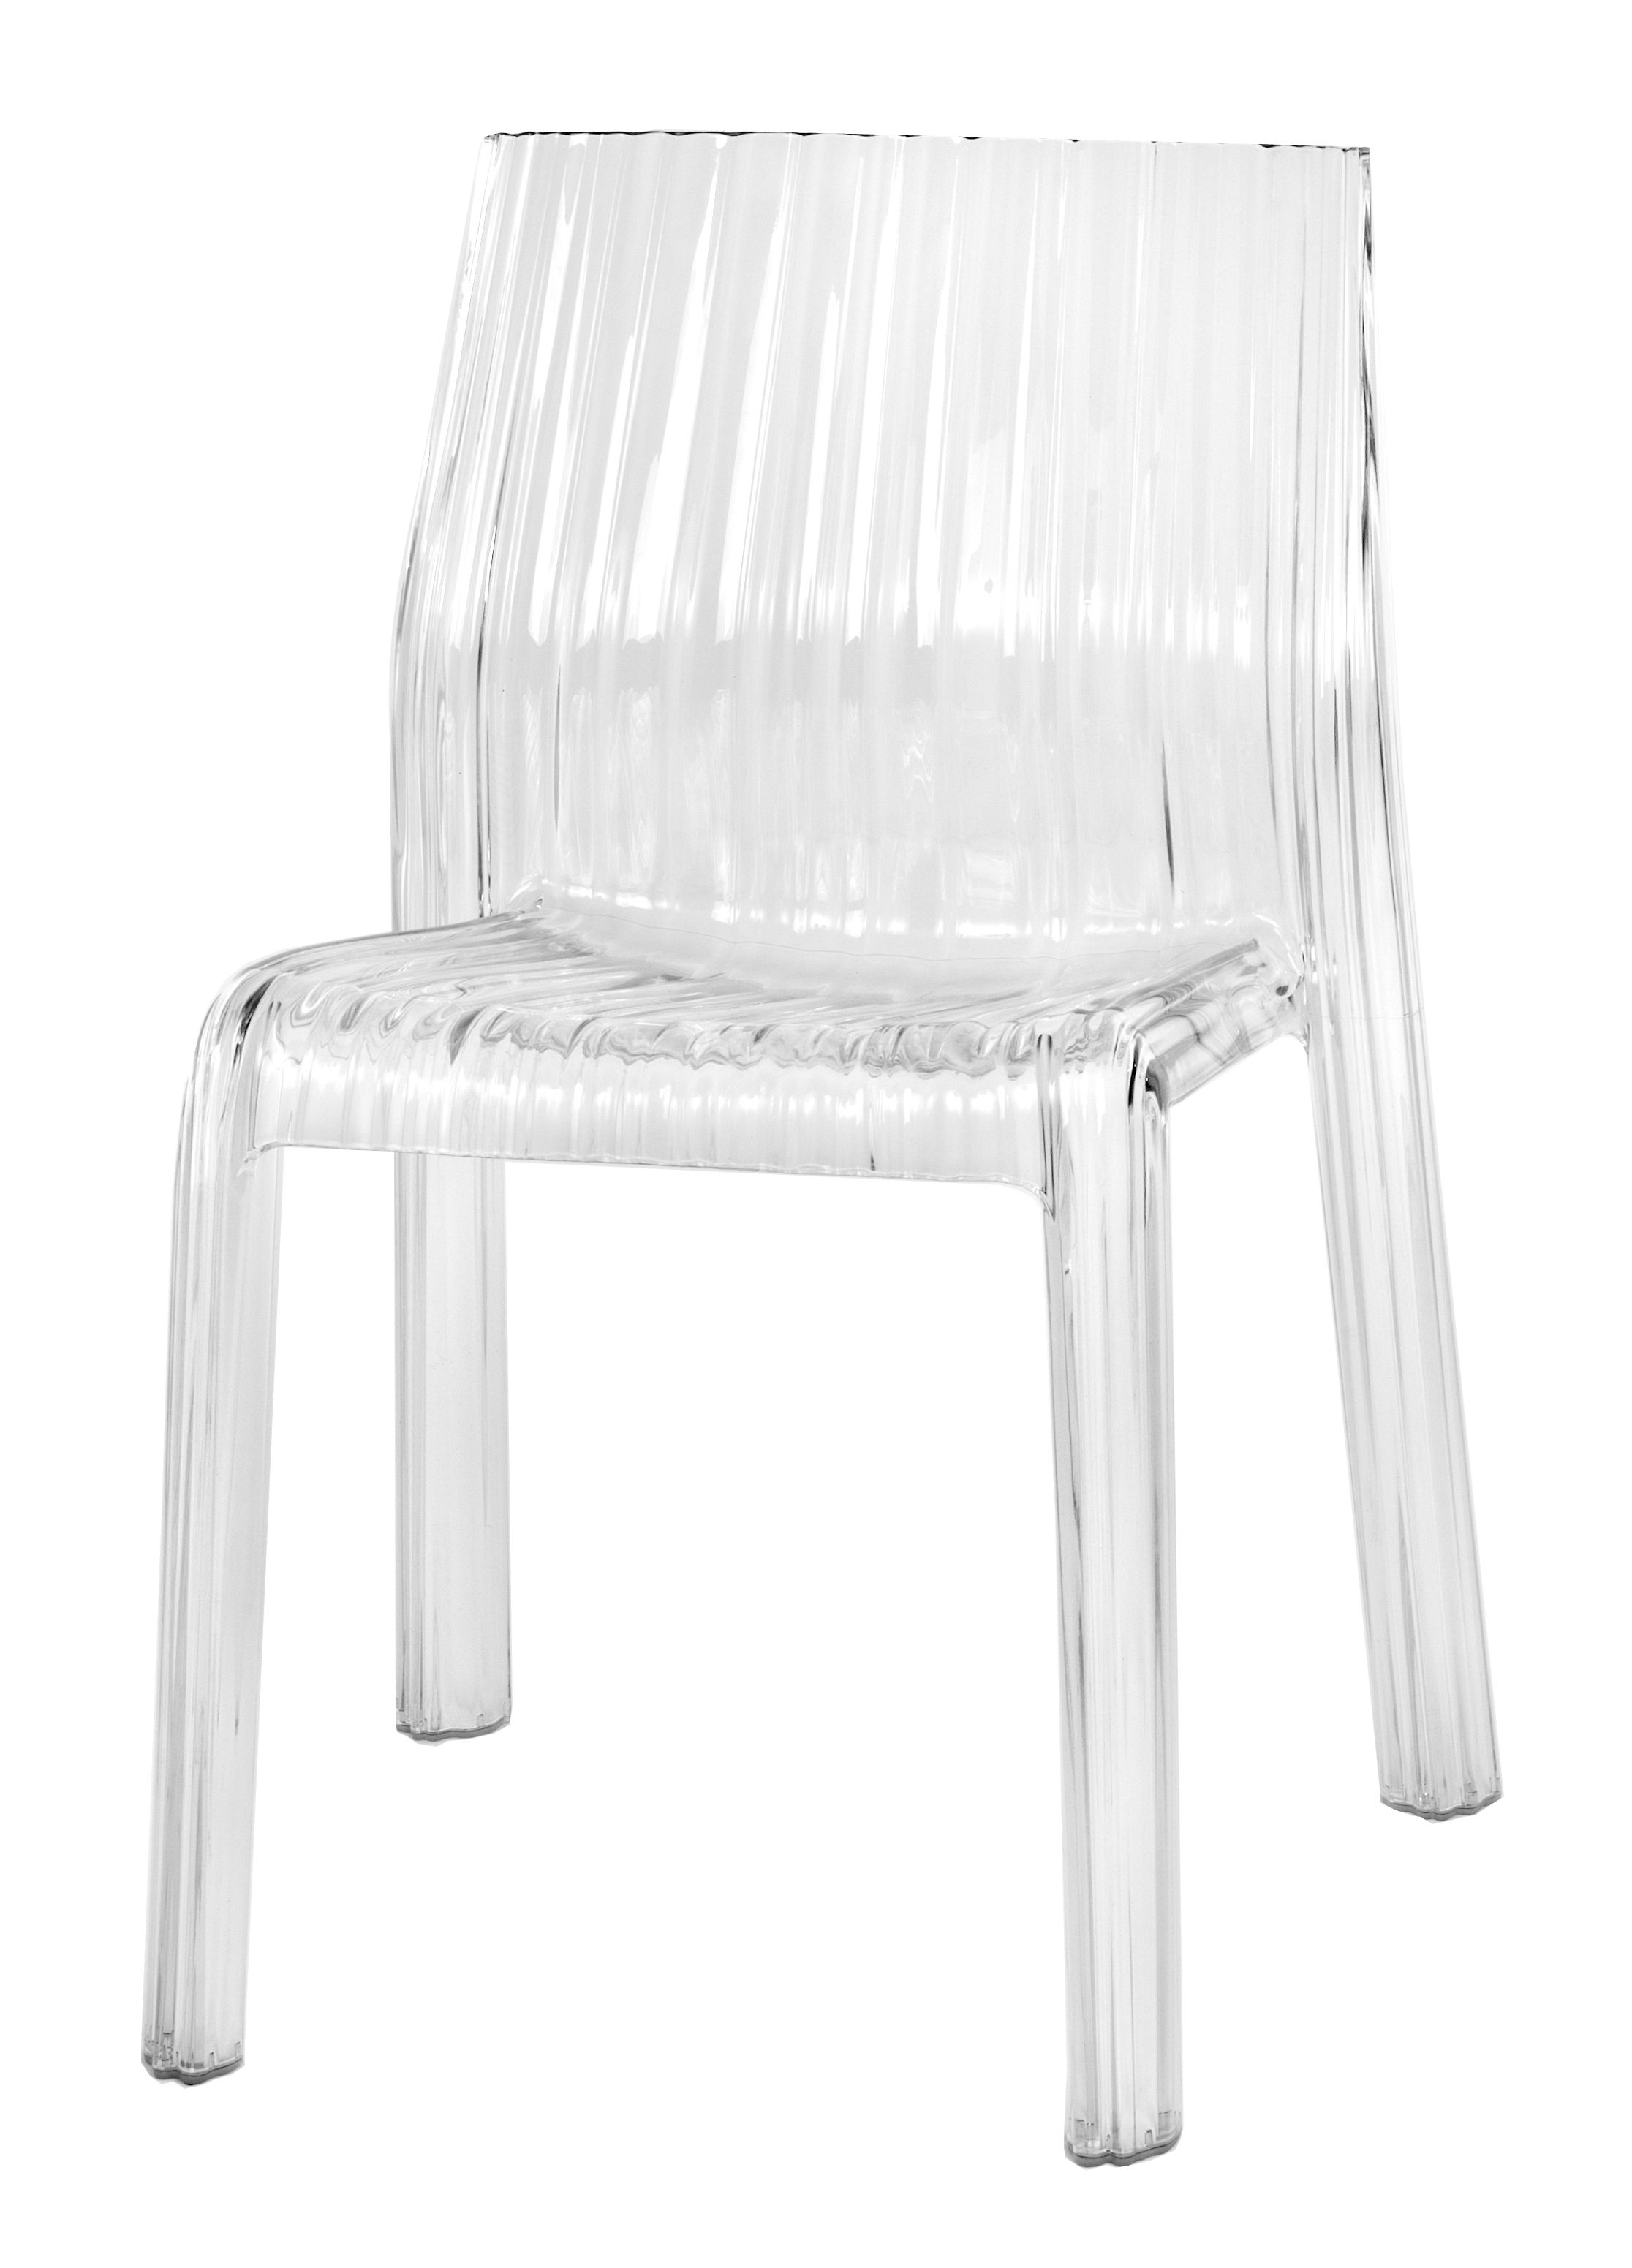 Furniture - Chairs - Frilly Stacking chair - transparent / Polycarbonate by Kartell - Cristal - Polycarbonate